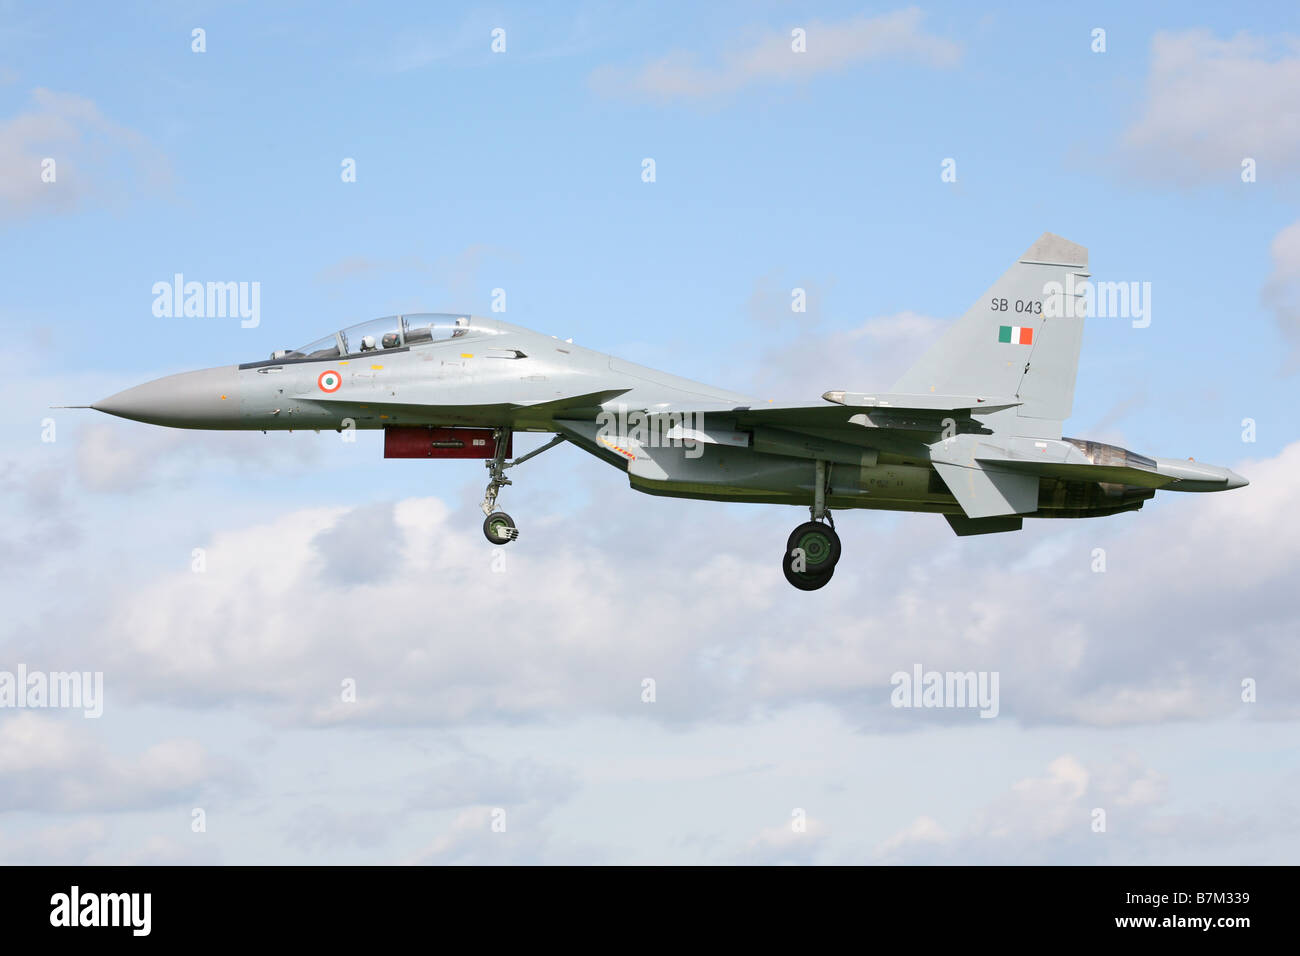 Sukhoi Su-30 of the Indian Air force comes in to land at RAF Waddington at the start of Exercise Indradhanush II - Stock Image